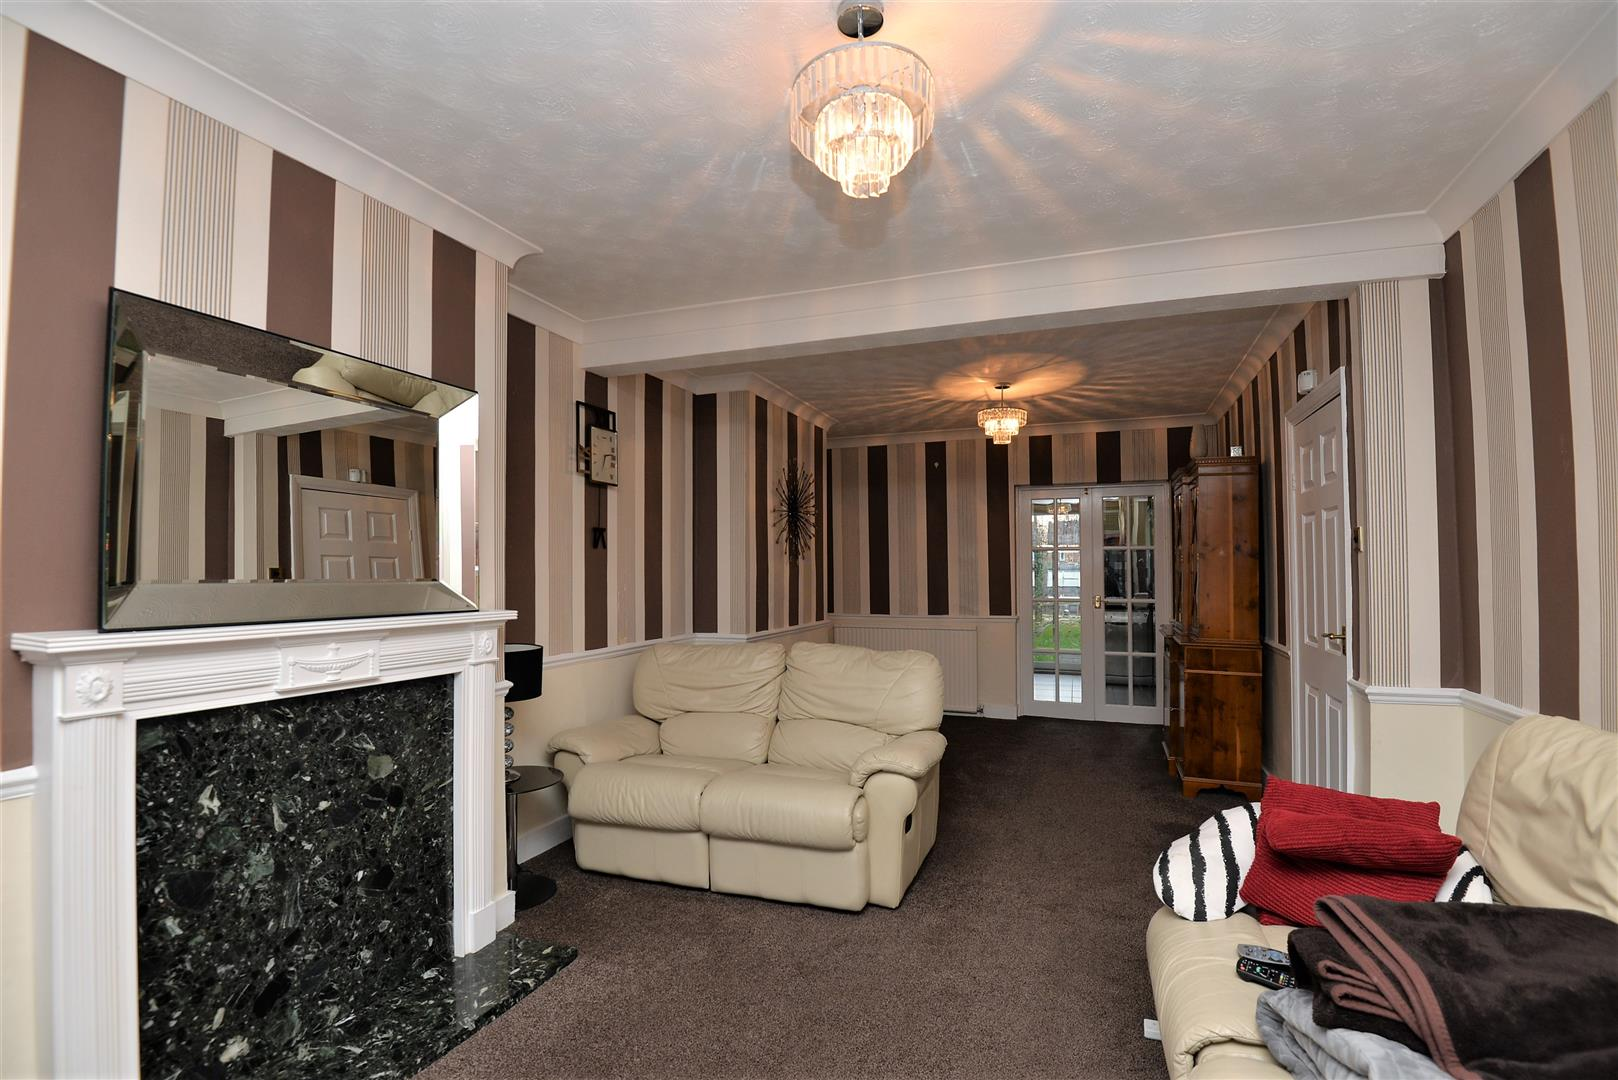 4 Bedroom Terraced House For Sale In Burnham Road Chingford E4